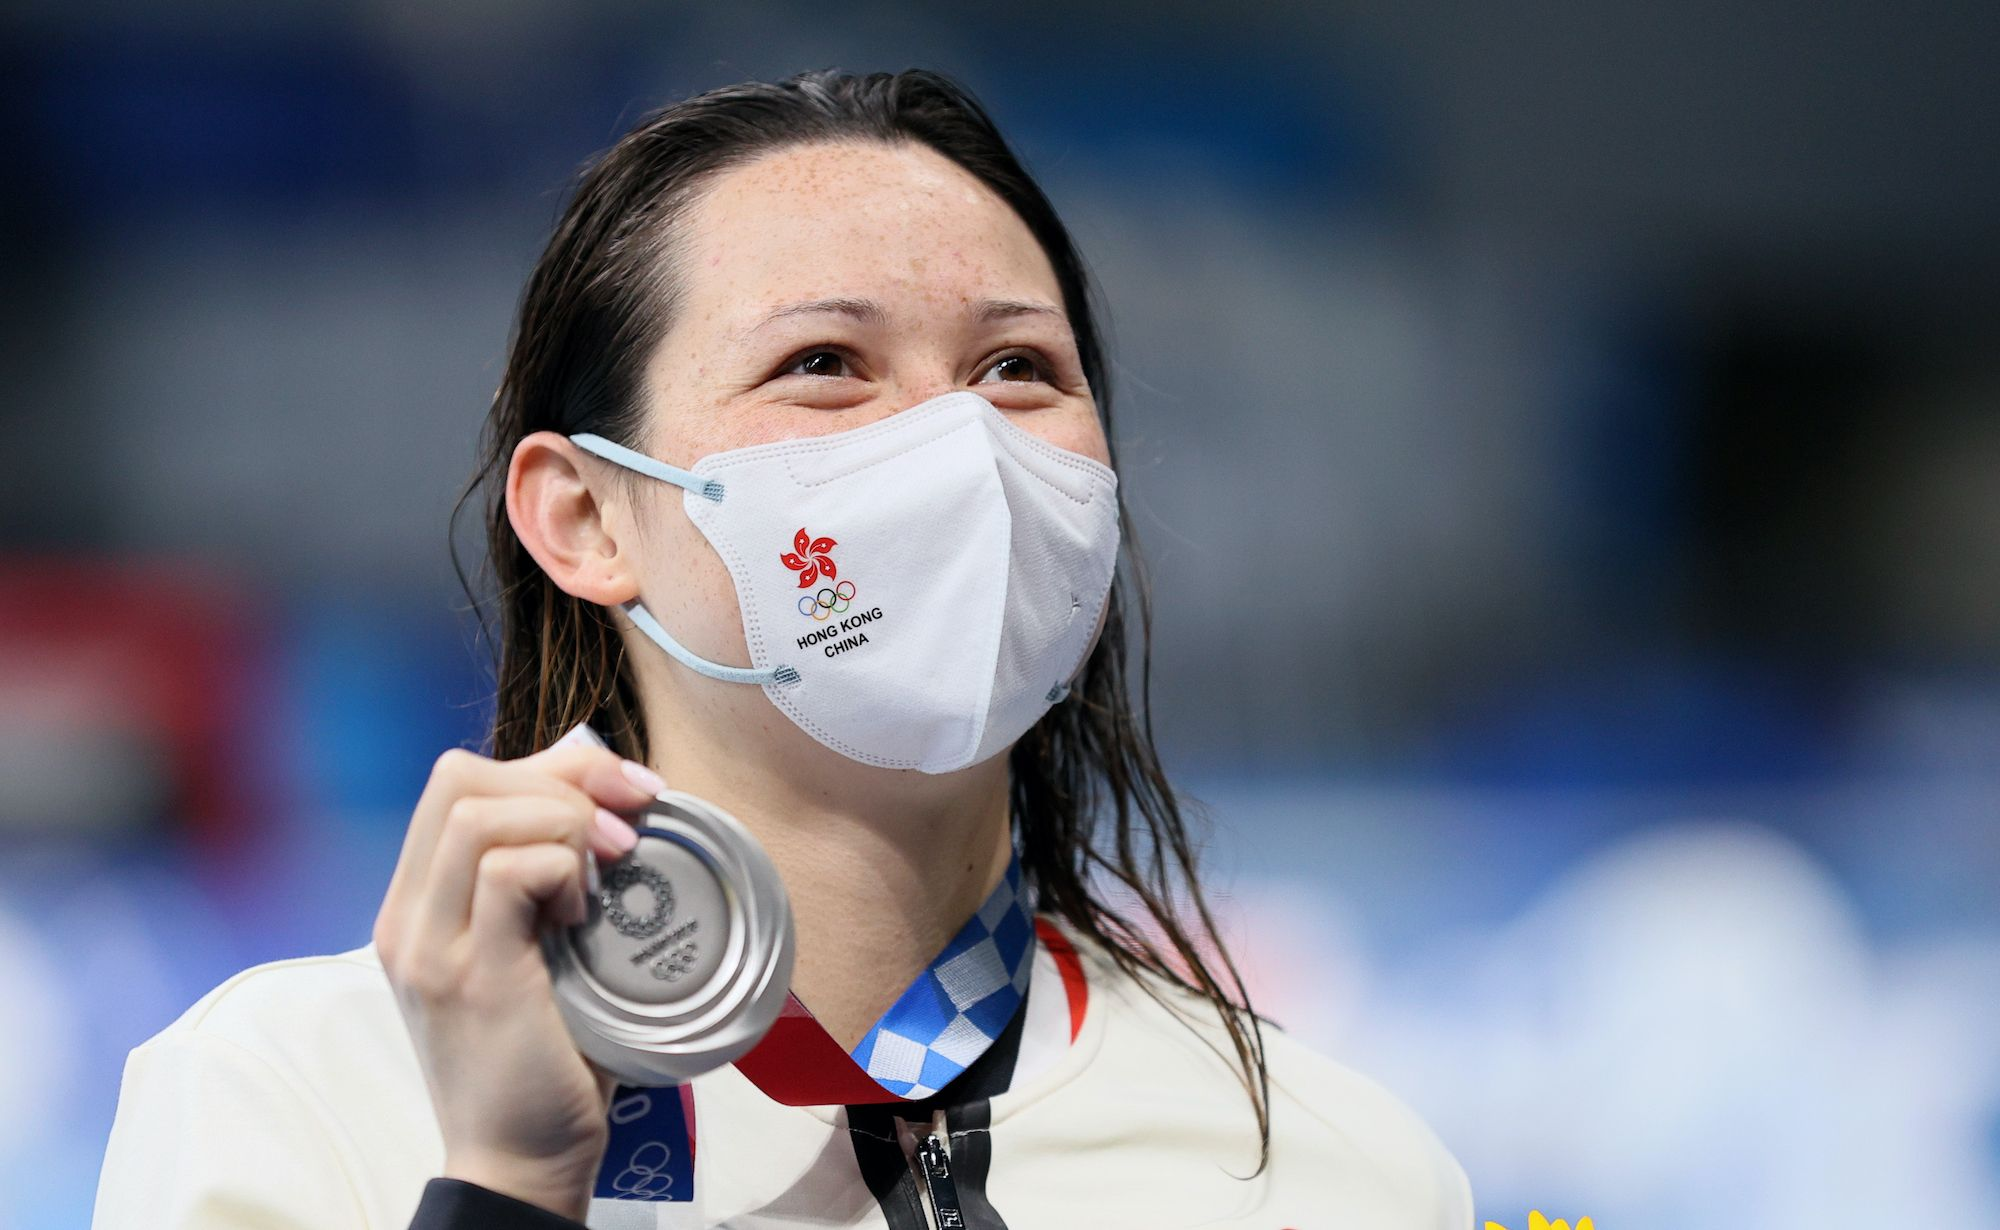 TOKYO, JAPAN - JULY 28, 2021: Silver medallist Siobhan Bernadette Haughey of Hong Kong (China) poses with her medal during the victory ceremony for the ladies' 200m freestyle final at Tokyo Aquatics Centre during the 2020 Summer Olympic Games. Sergei Bobylev/TASS (Photo by Sergei Bobylev\TASS via Getty Images)